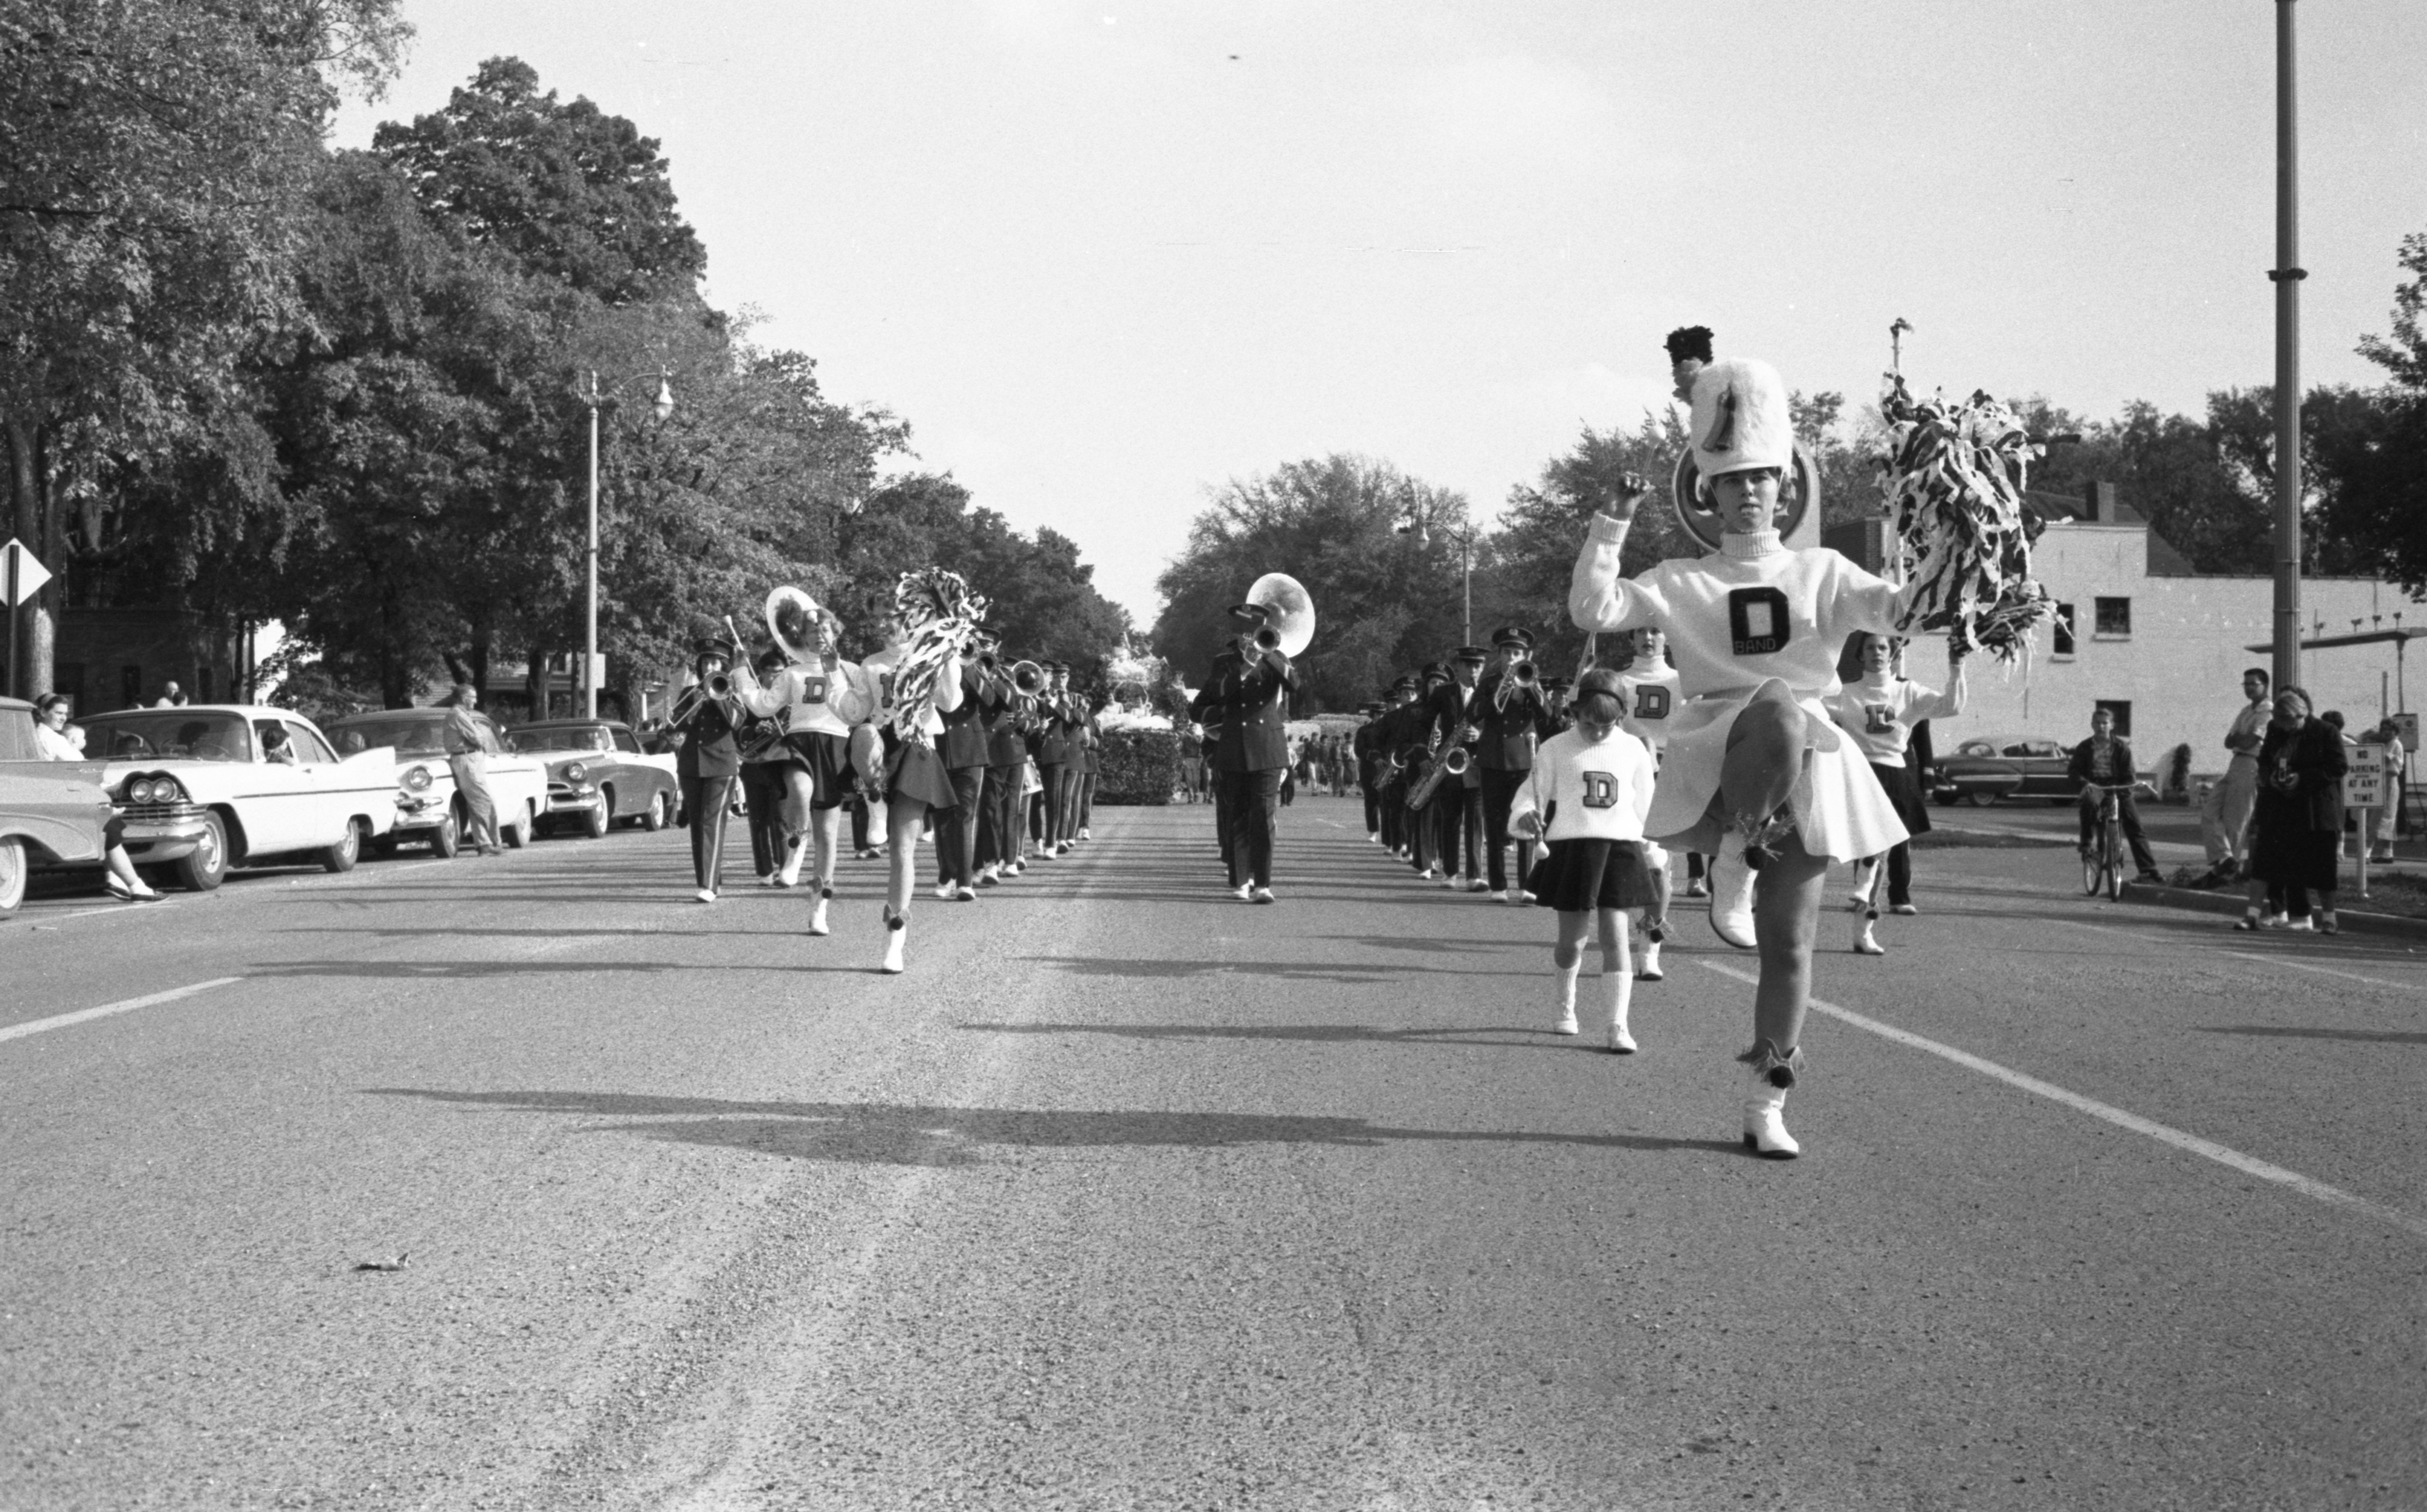 Marching Band Members In The Dexter High School Homecoming Parade, October 1959 image